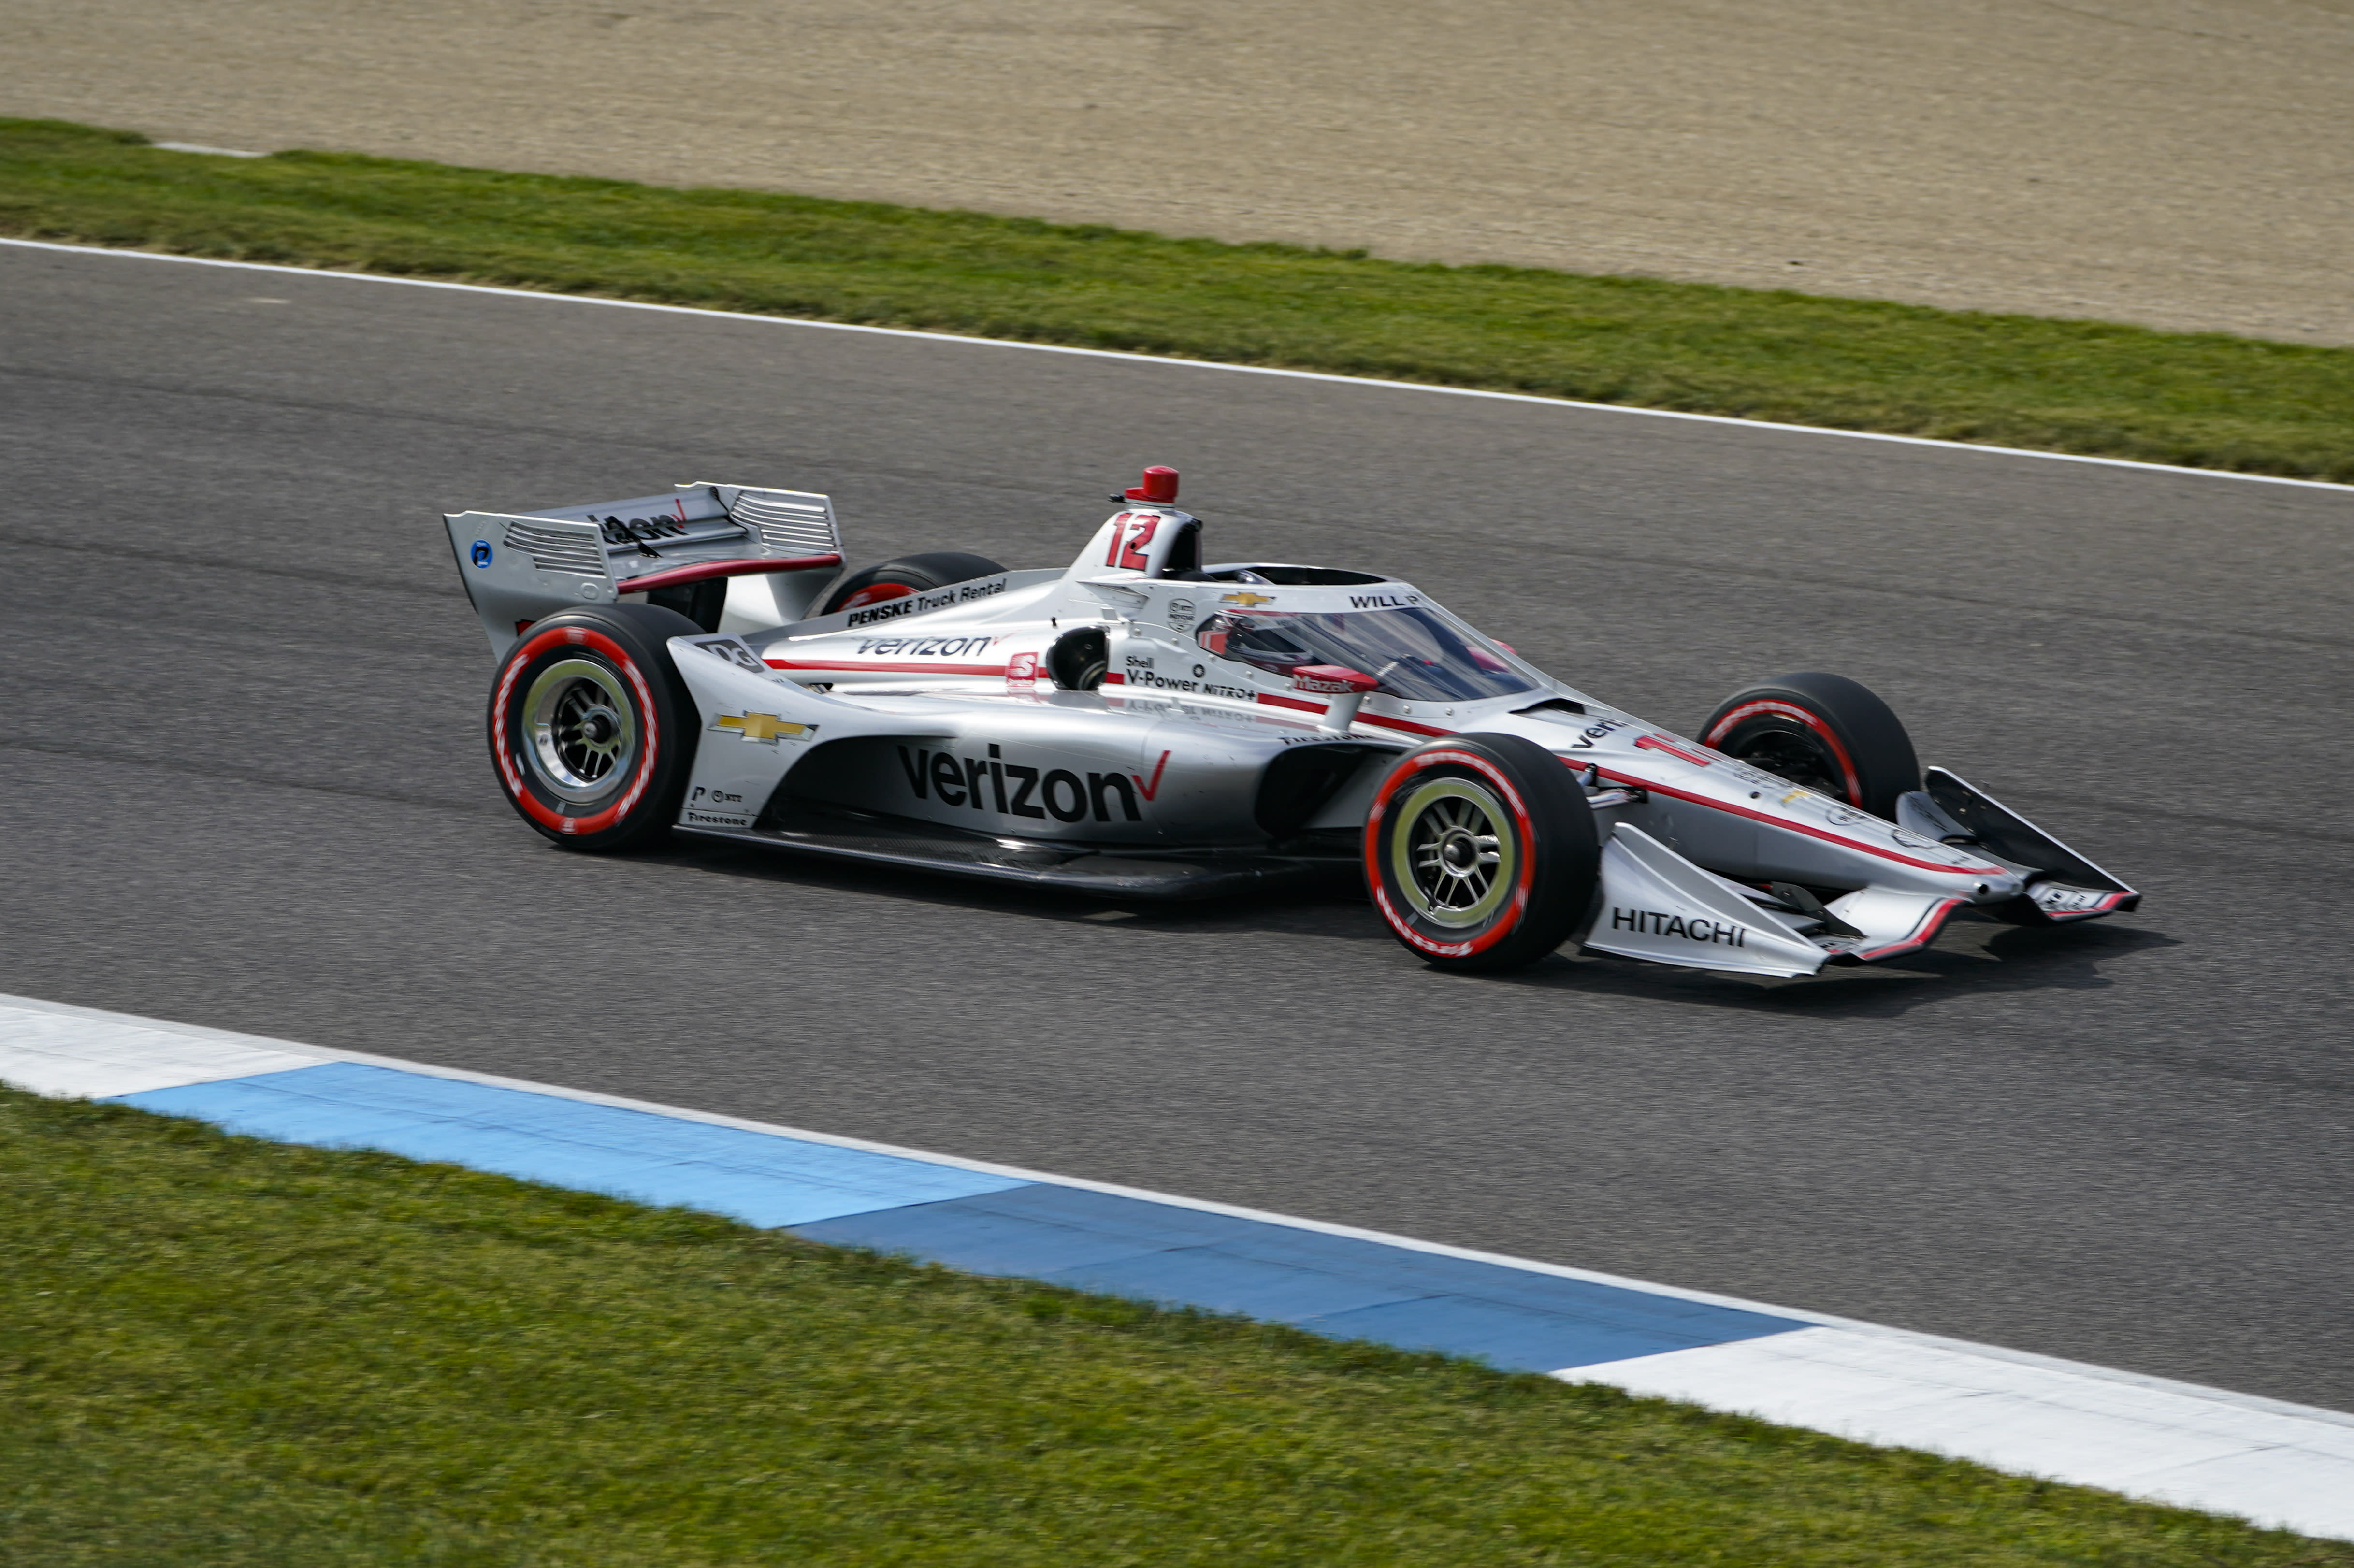 Will Power, of Australia, drives through a turn during an IndyCar auto race at Indianapolis Motor Speedway in Indianapolis, Saturday, Oct. 3, 2020. (AP Photo/Michael Conroy)